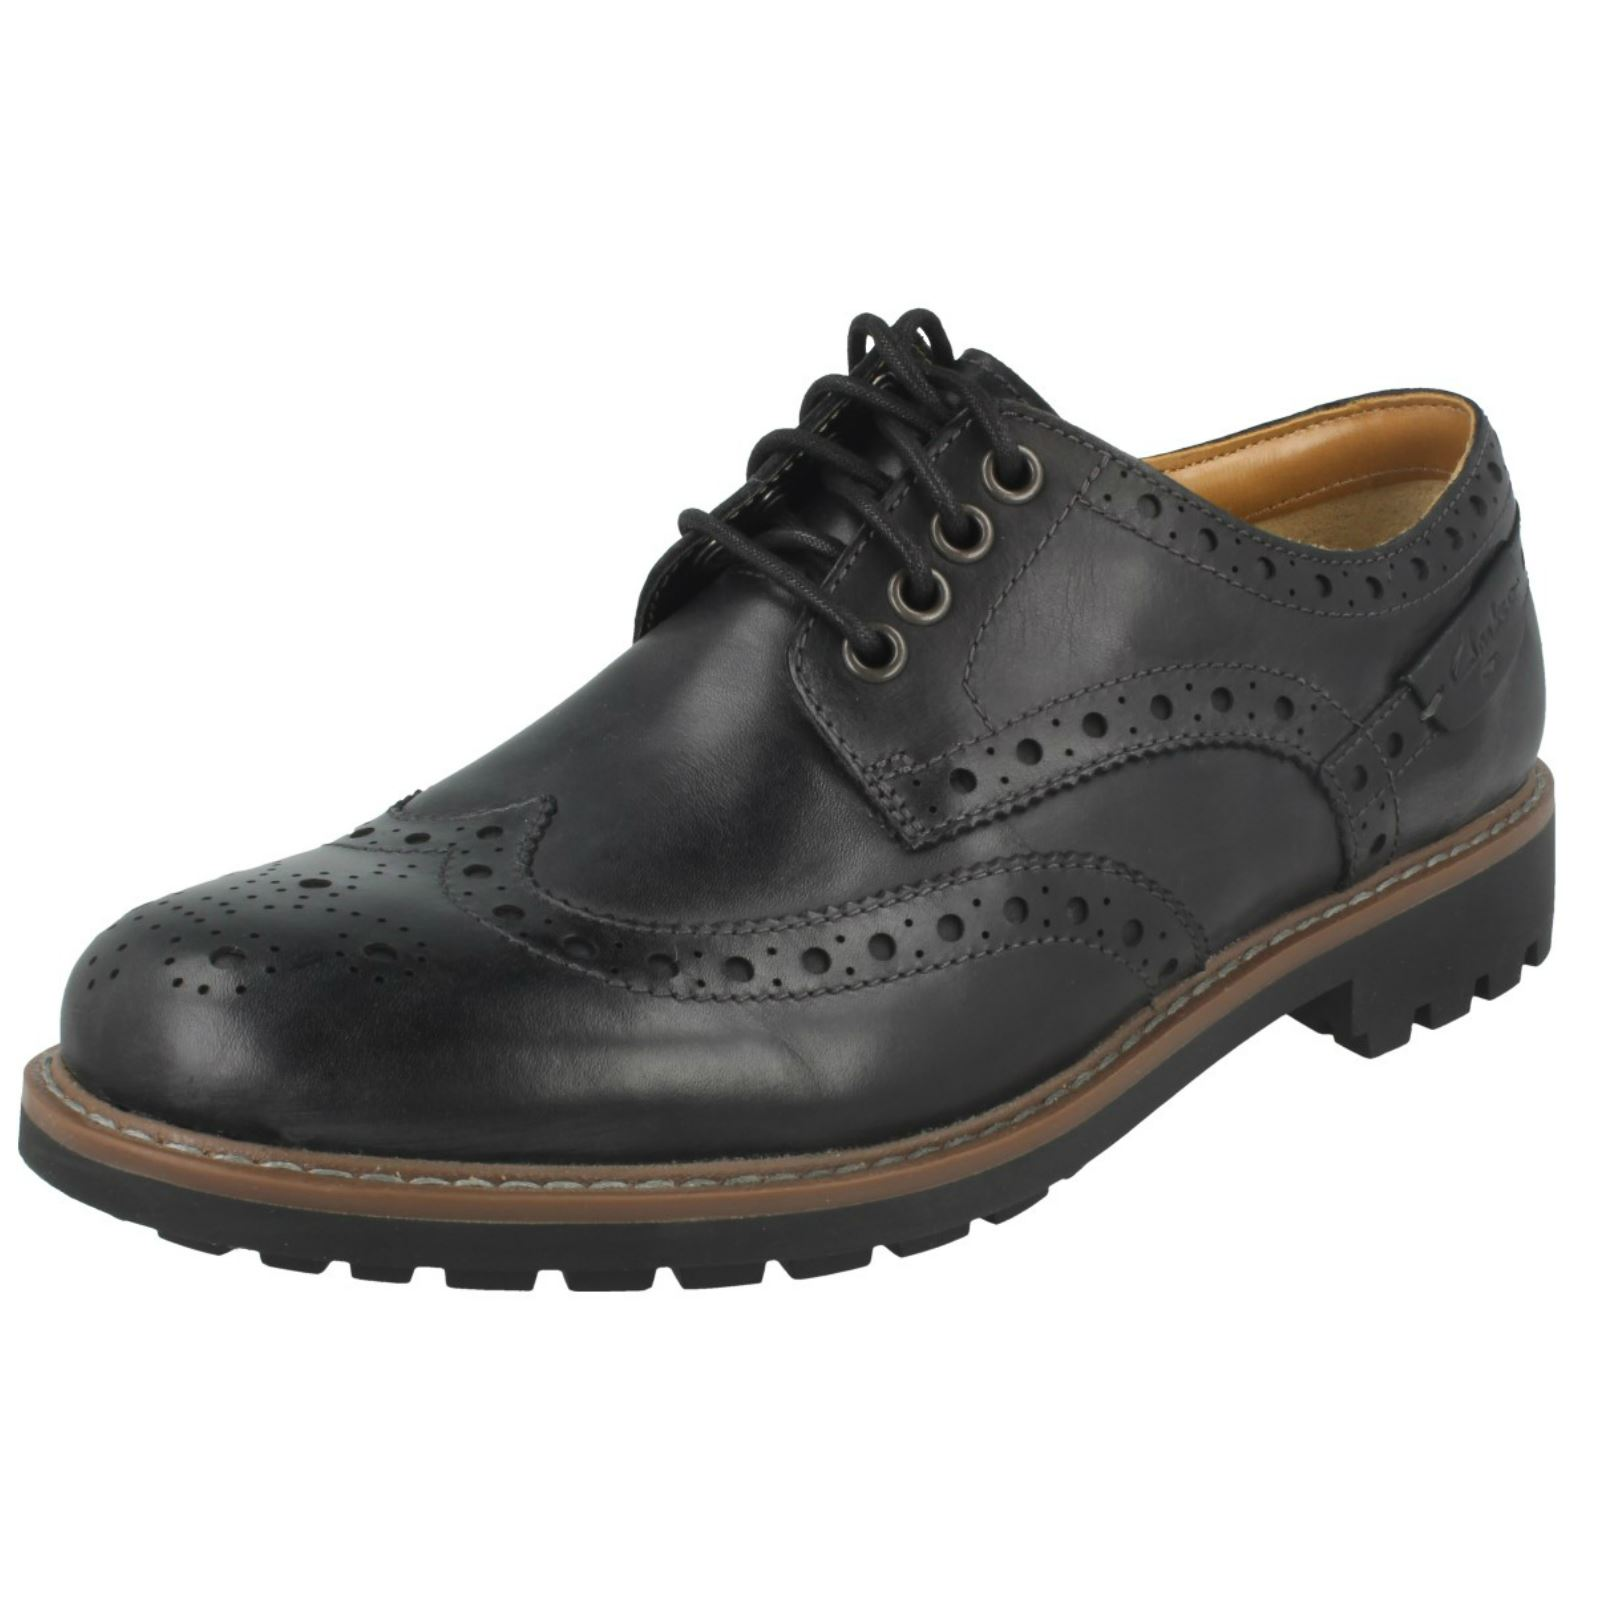 Outlet Locations Cheap Price Cheap Sale Prices Mens Montacute Wing Lace-Ups Clarks 2018 Unisex Great Deals X8AqbPx